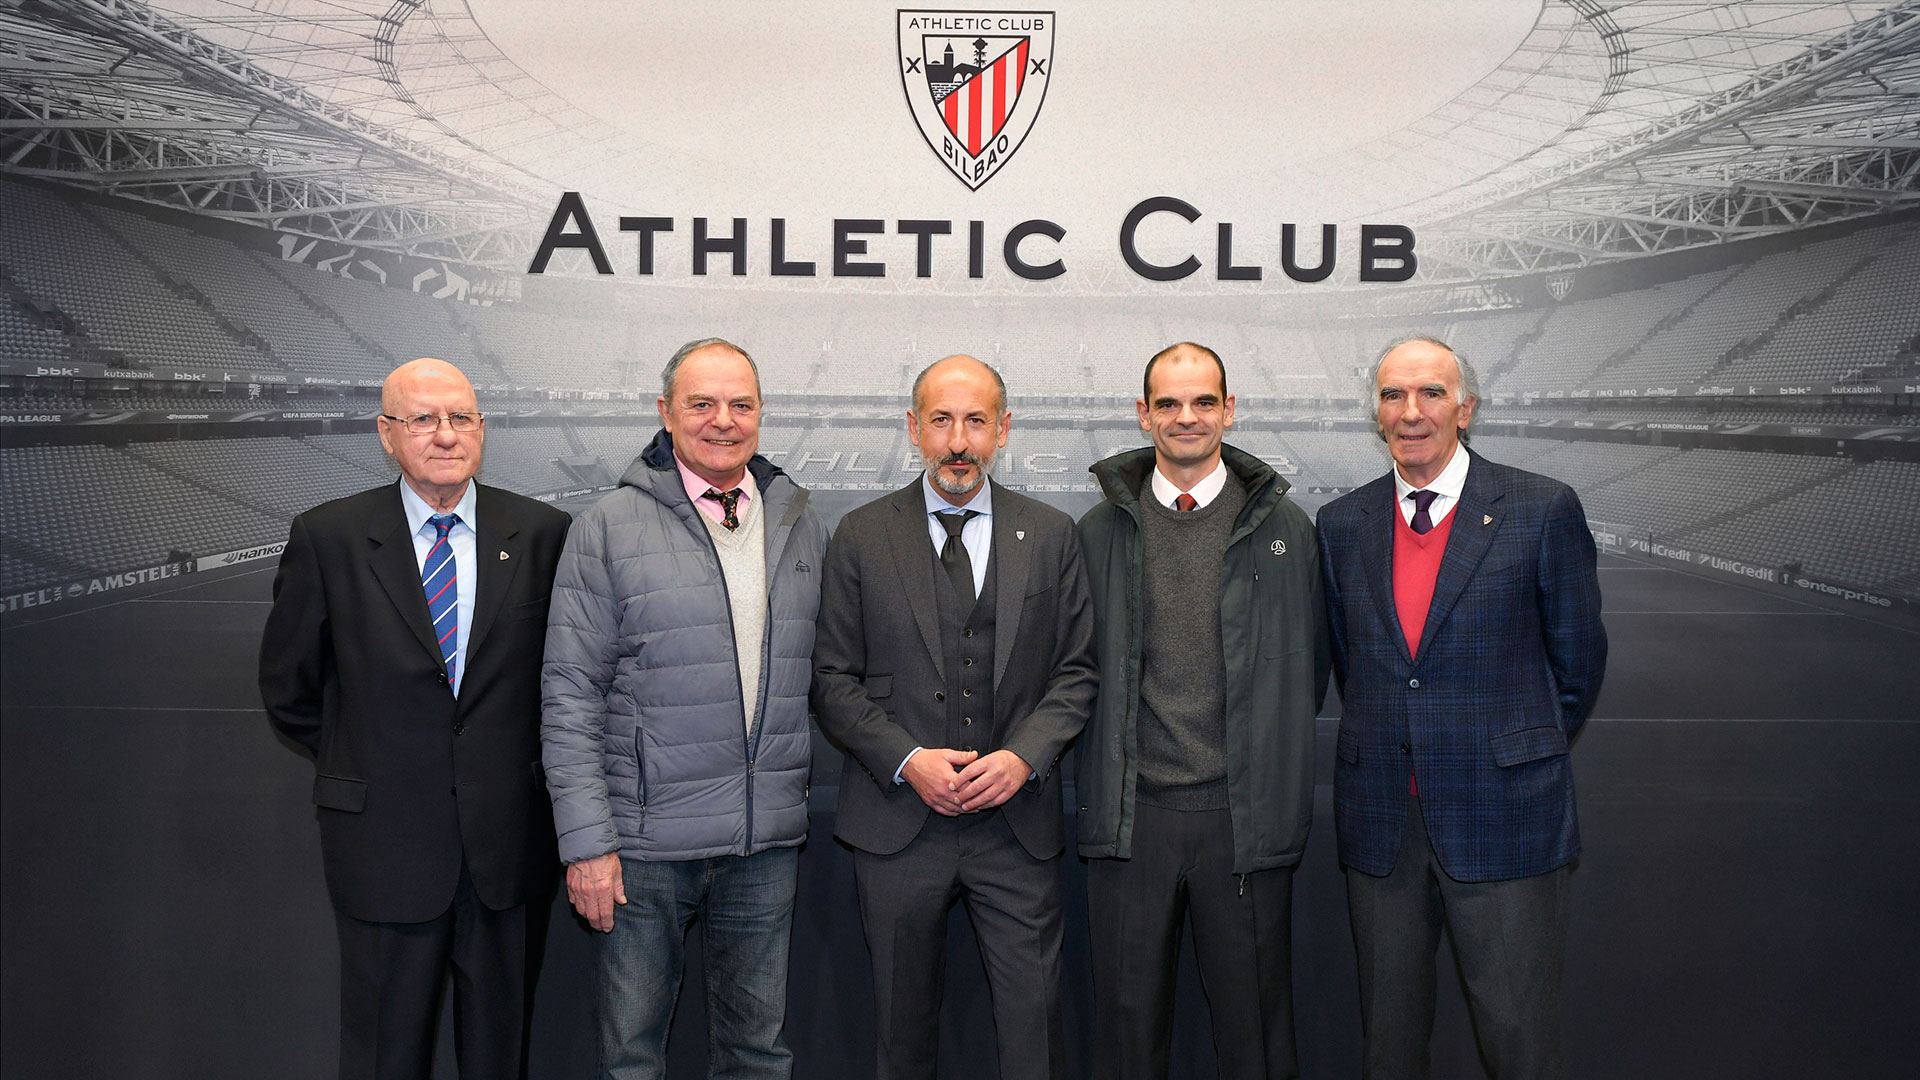 Members in Main Box for the match against Atlético de Madrid